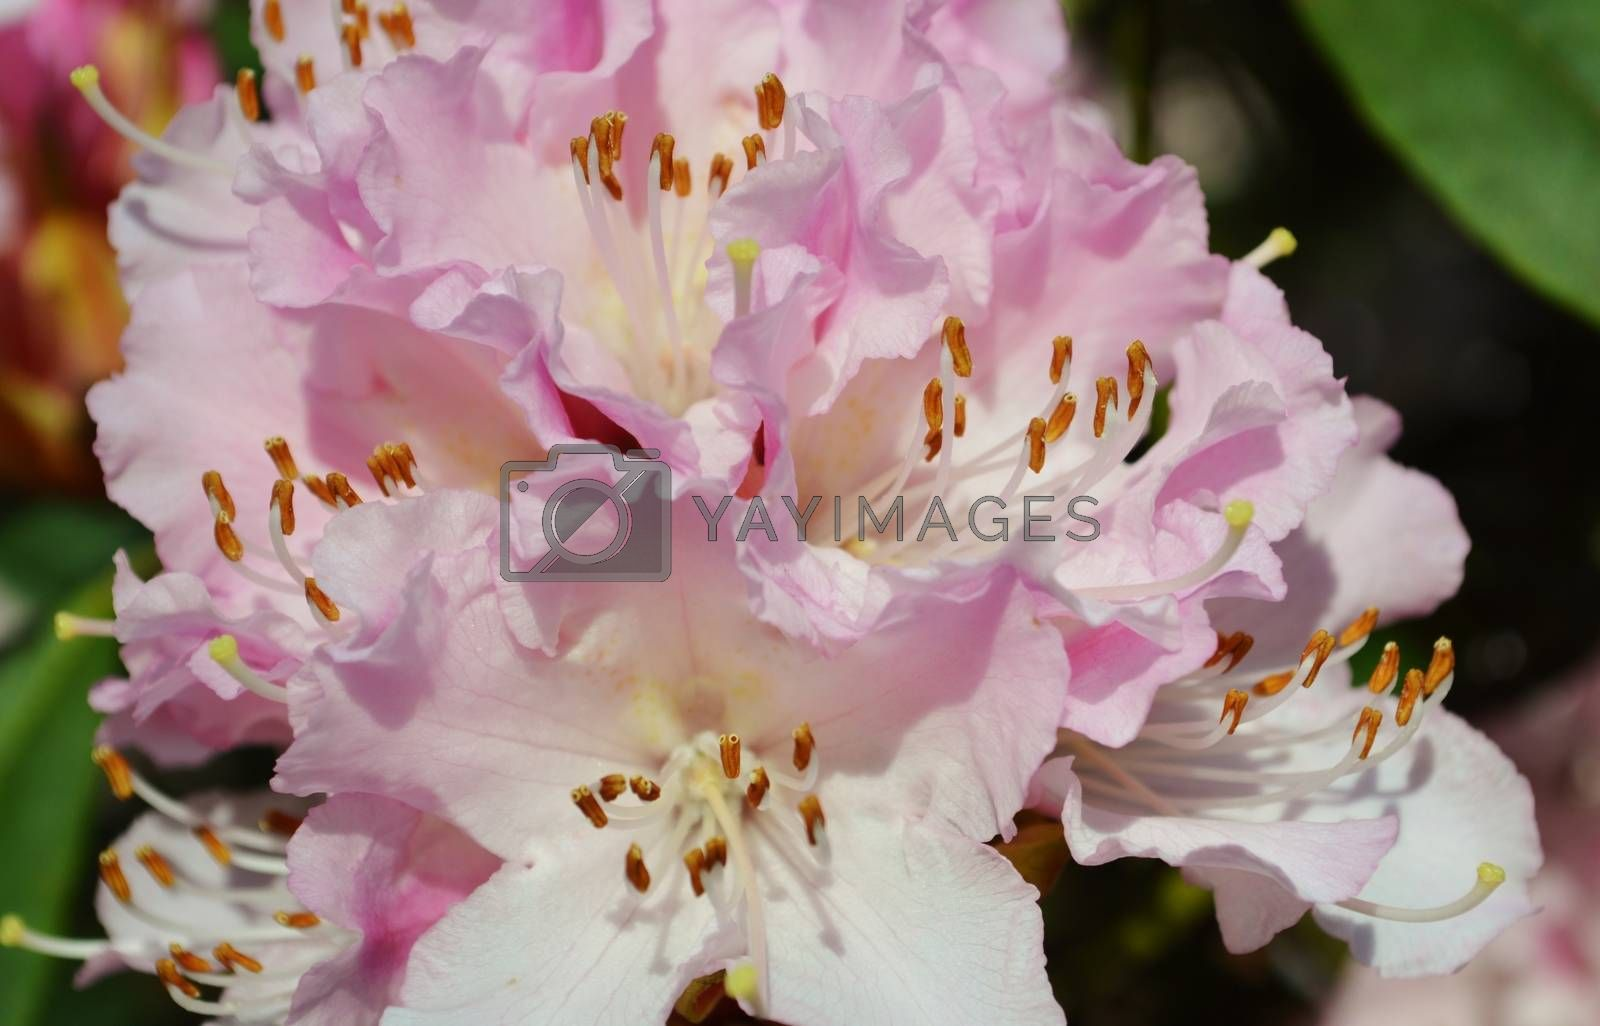 Royalty free image of Rhododendron flowers. by paulst